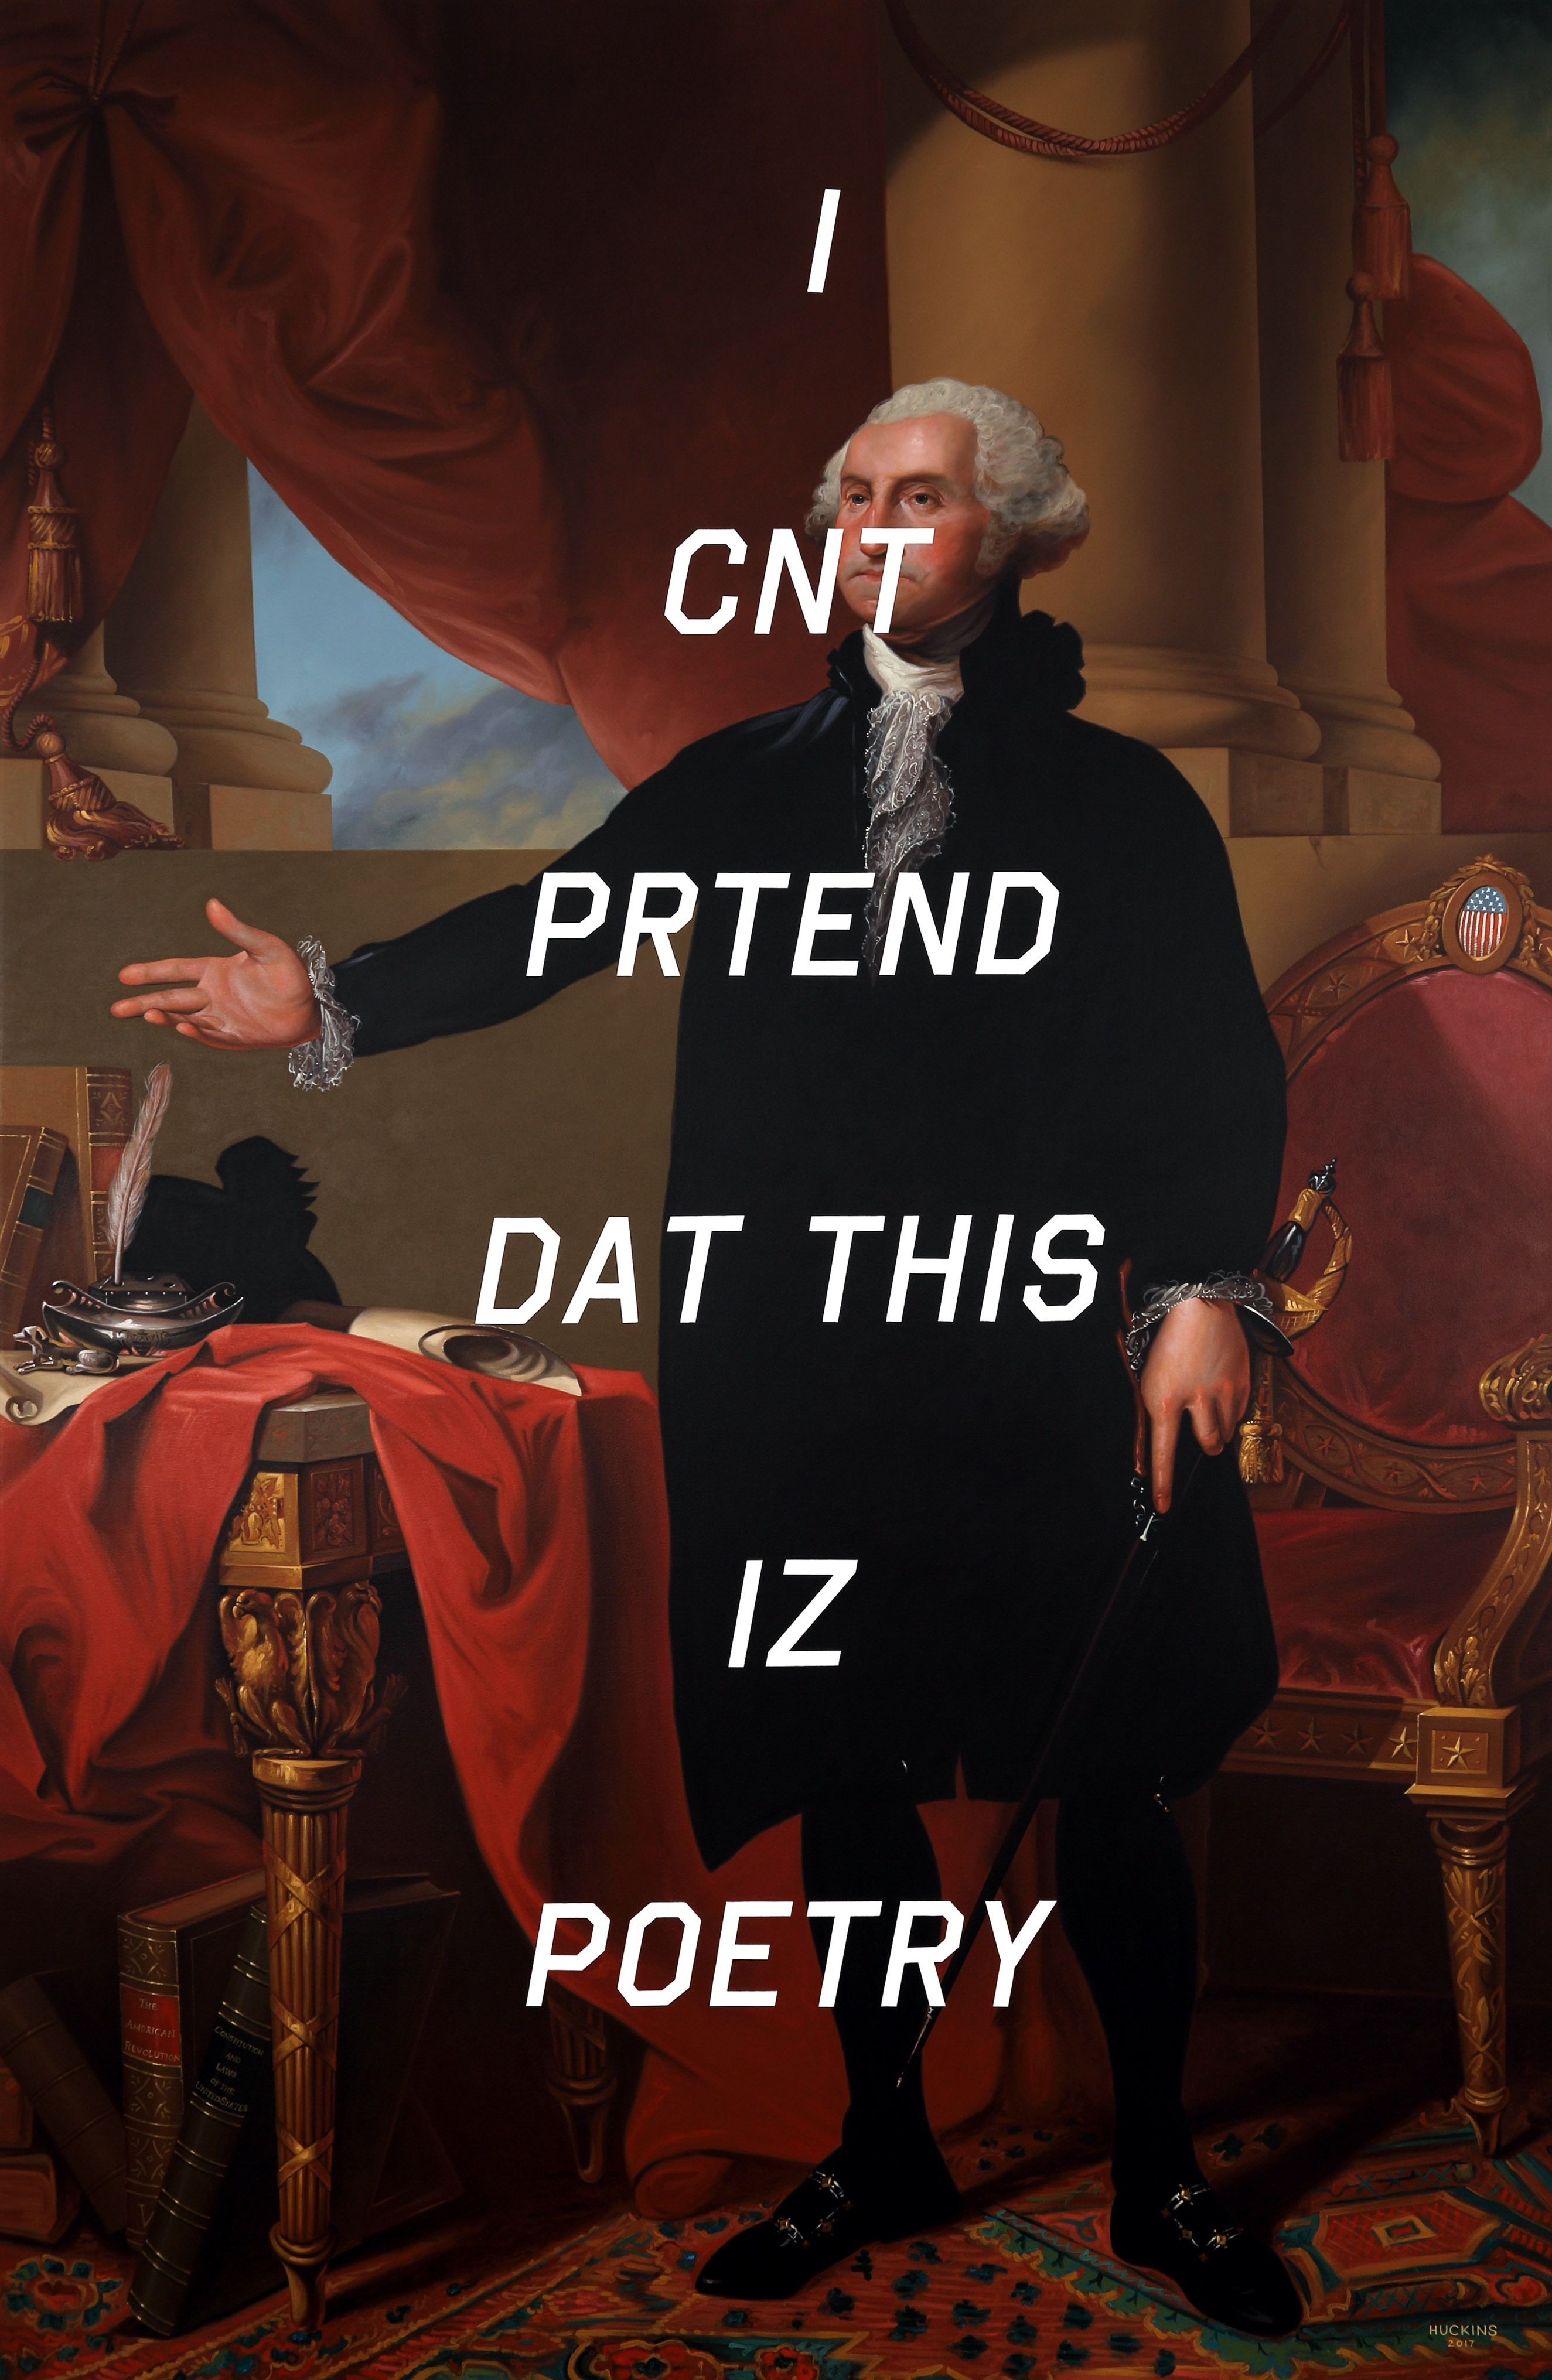 Social Media Meets American History in Shawn Huckins' series Athenaeum